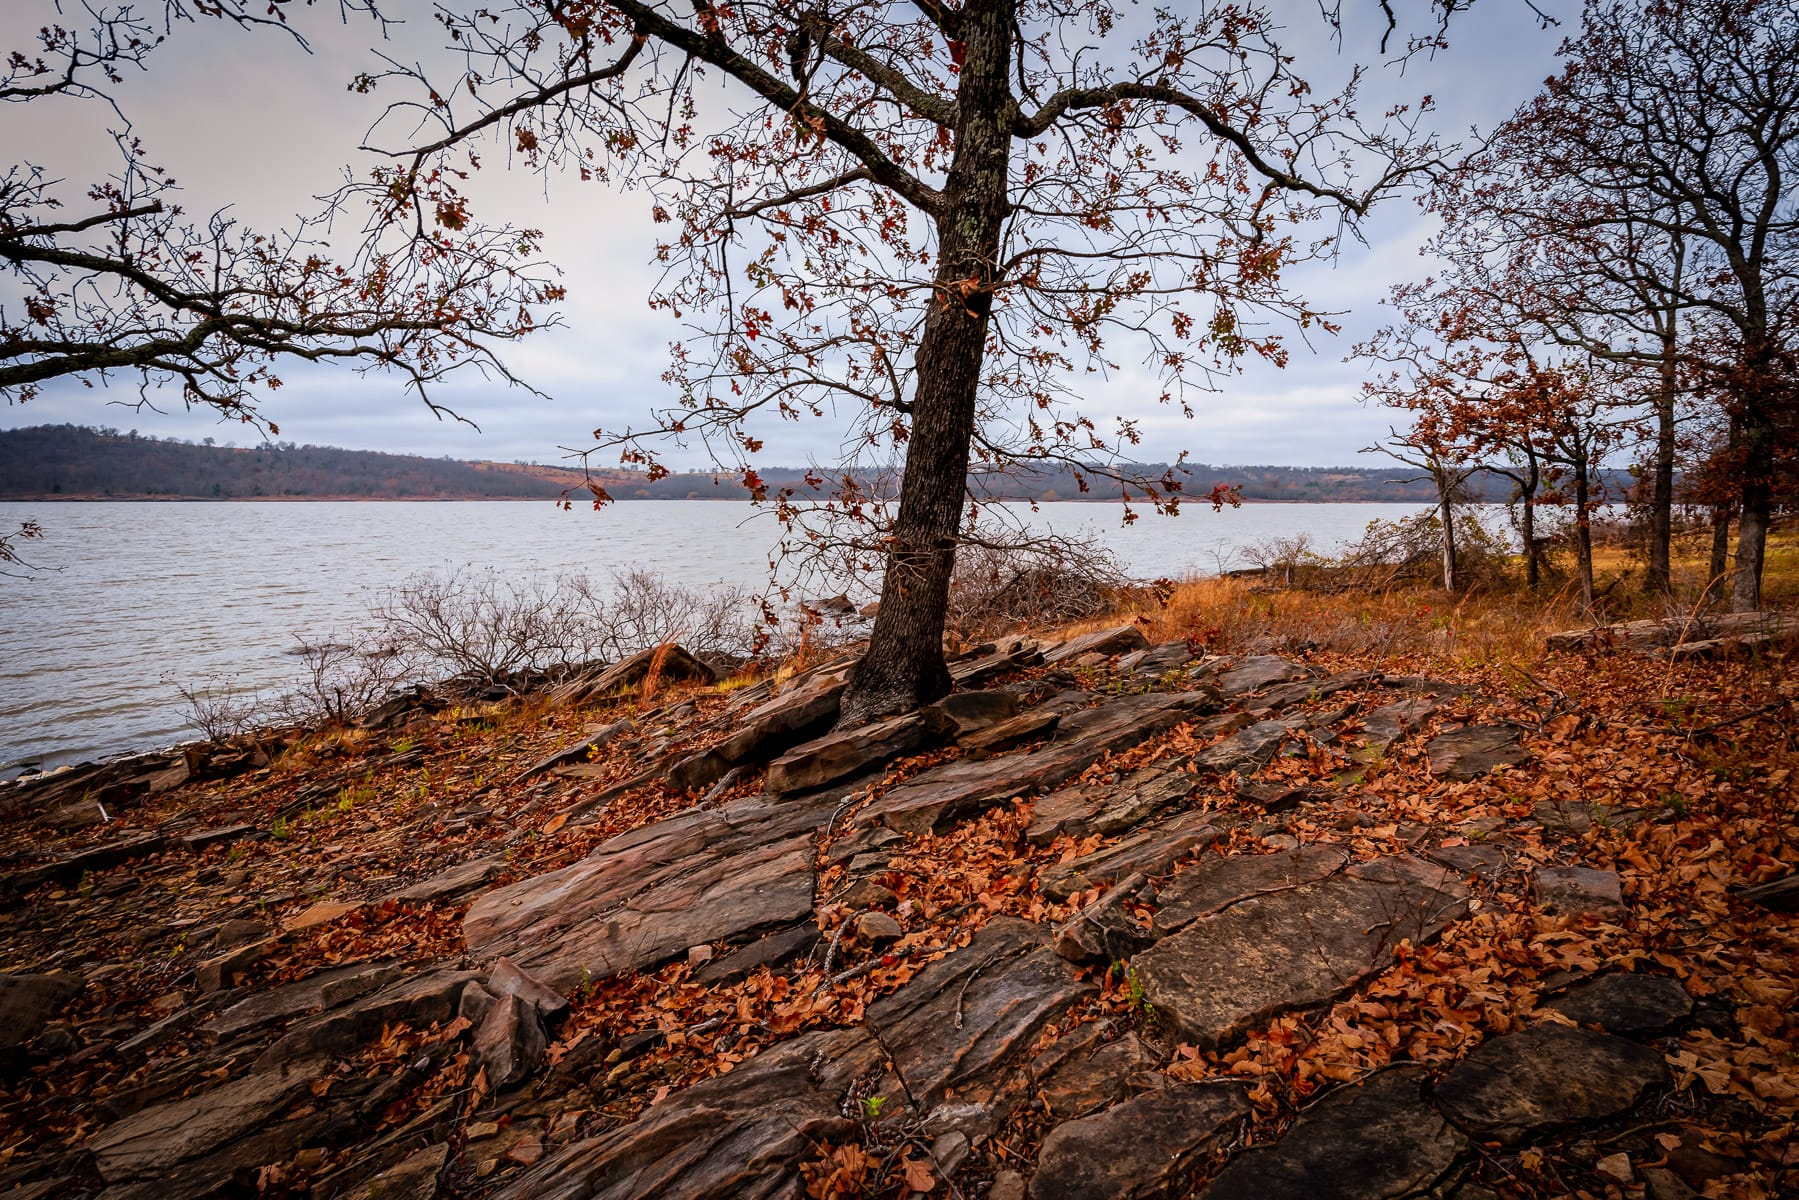 Trees along the rocky shore of Oklahoma's Lake Eufaula at Arrowhead State Park.